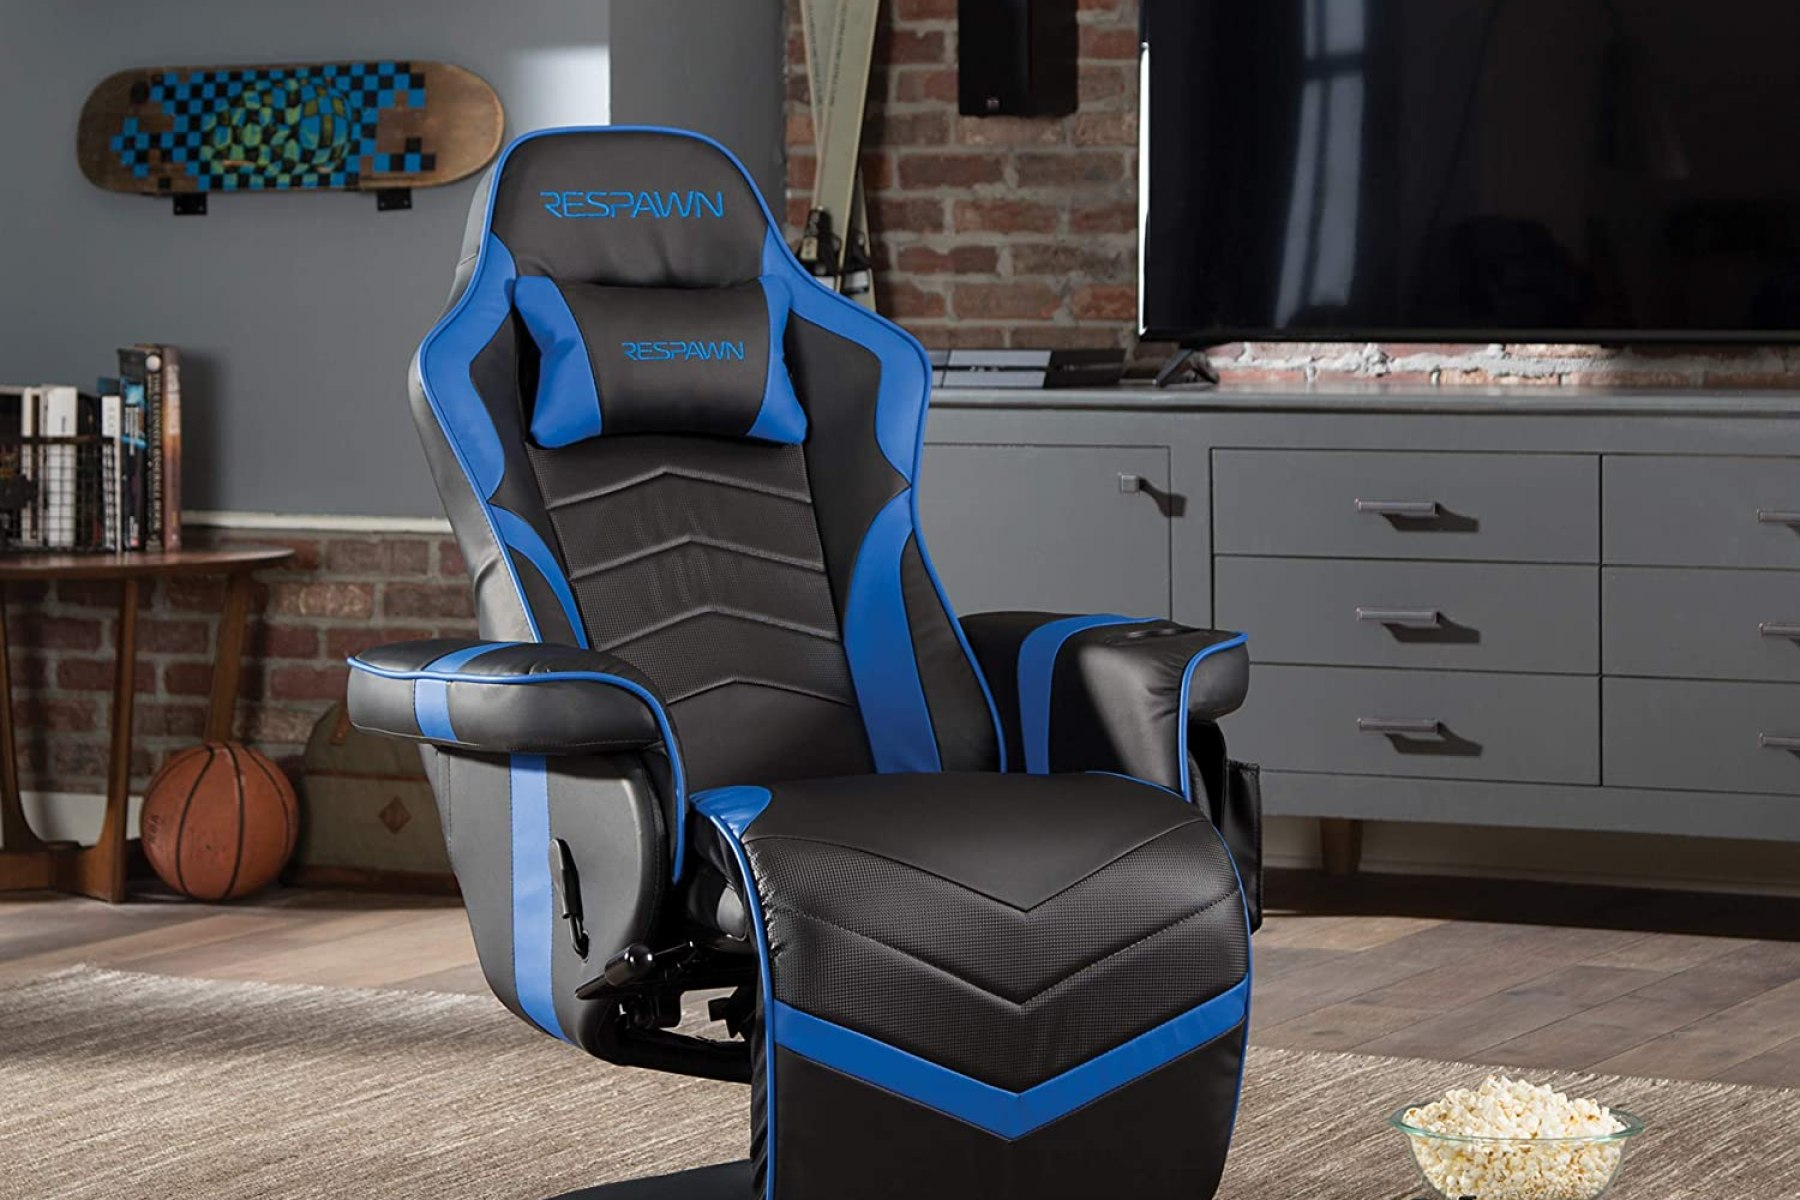 Best Gaming Chairs 2021 Most, Round Base Gaming Chair